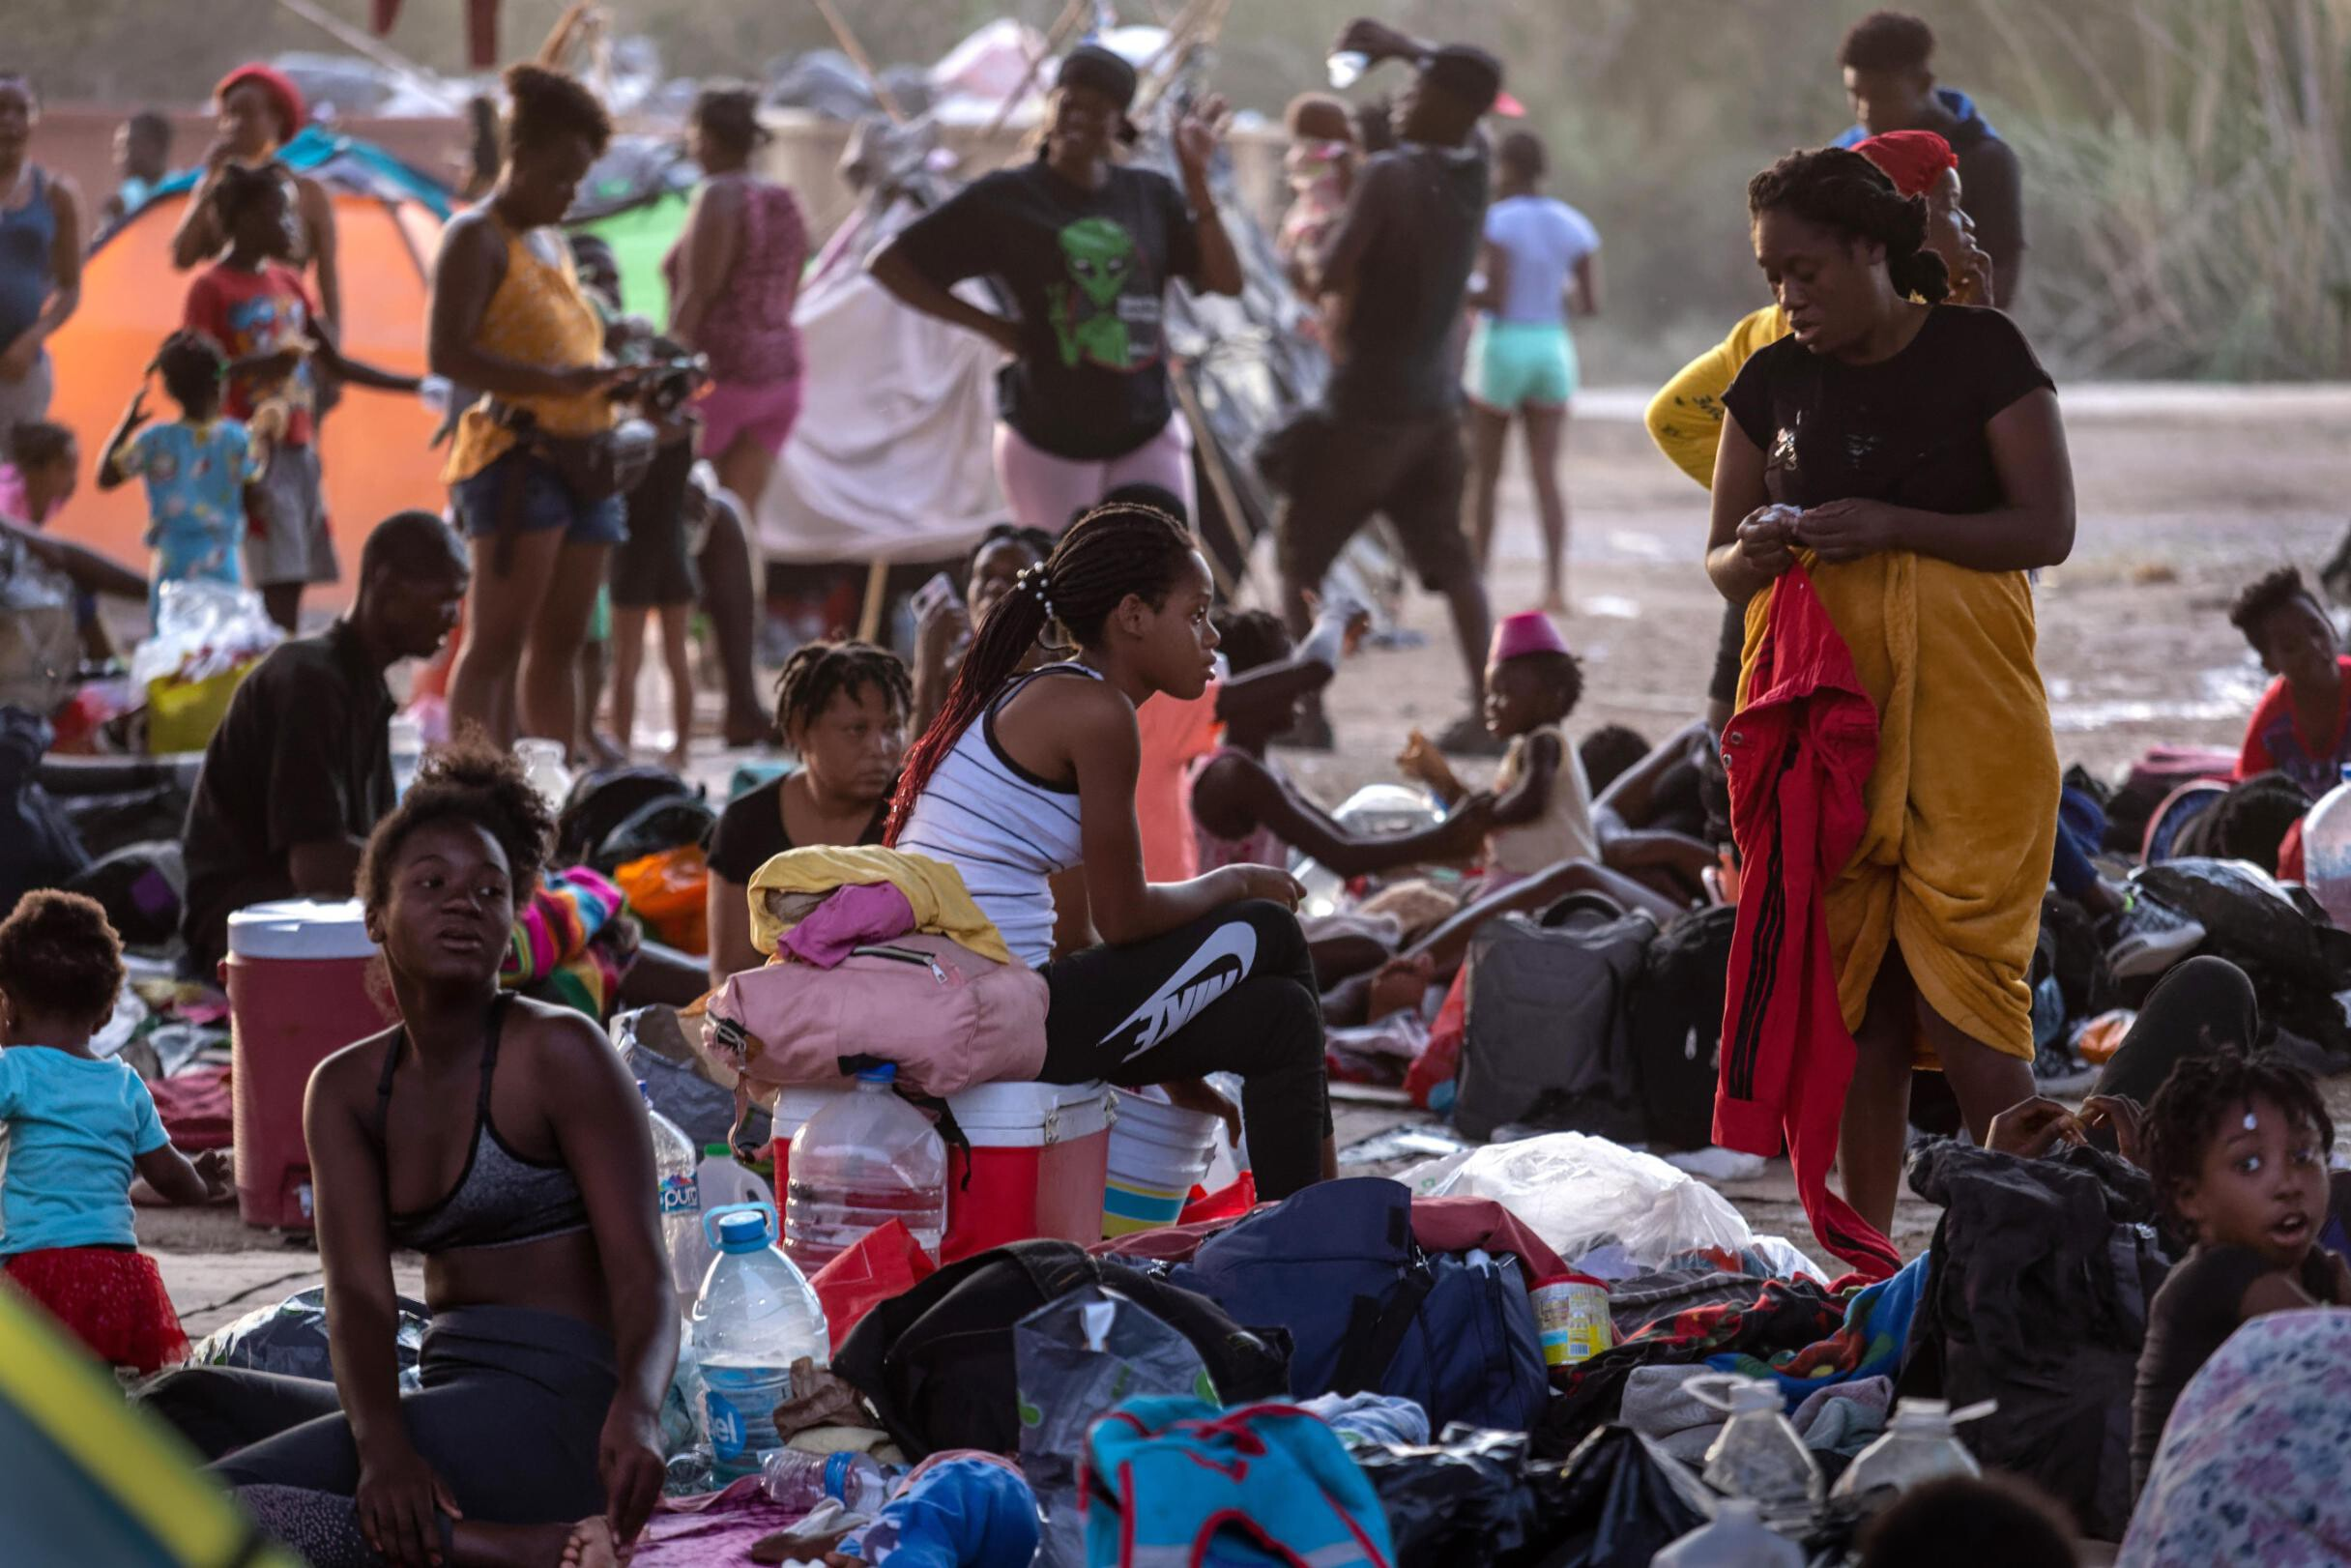 <i>John Moore/Getty Images</i><br/>Migrants under the international bridge at a camp on the U.S.-Mexico border on Sept. 21